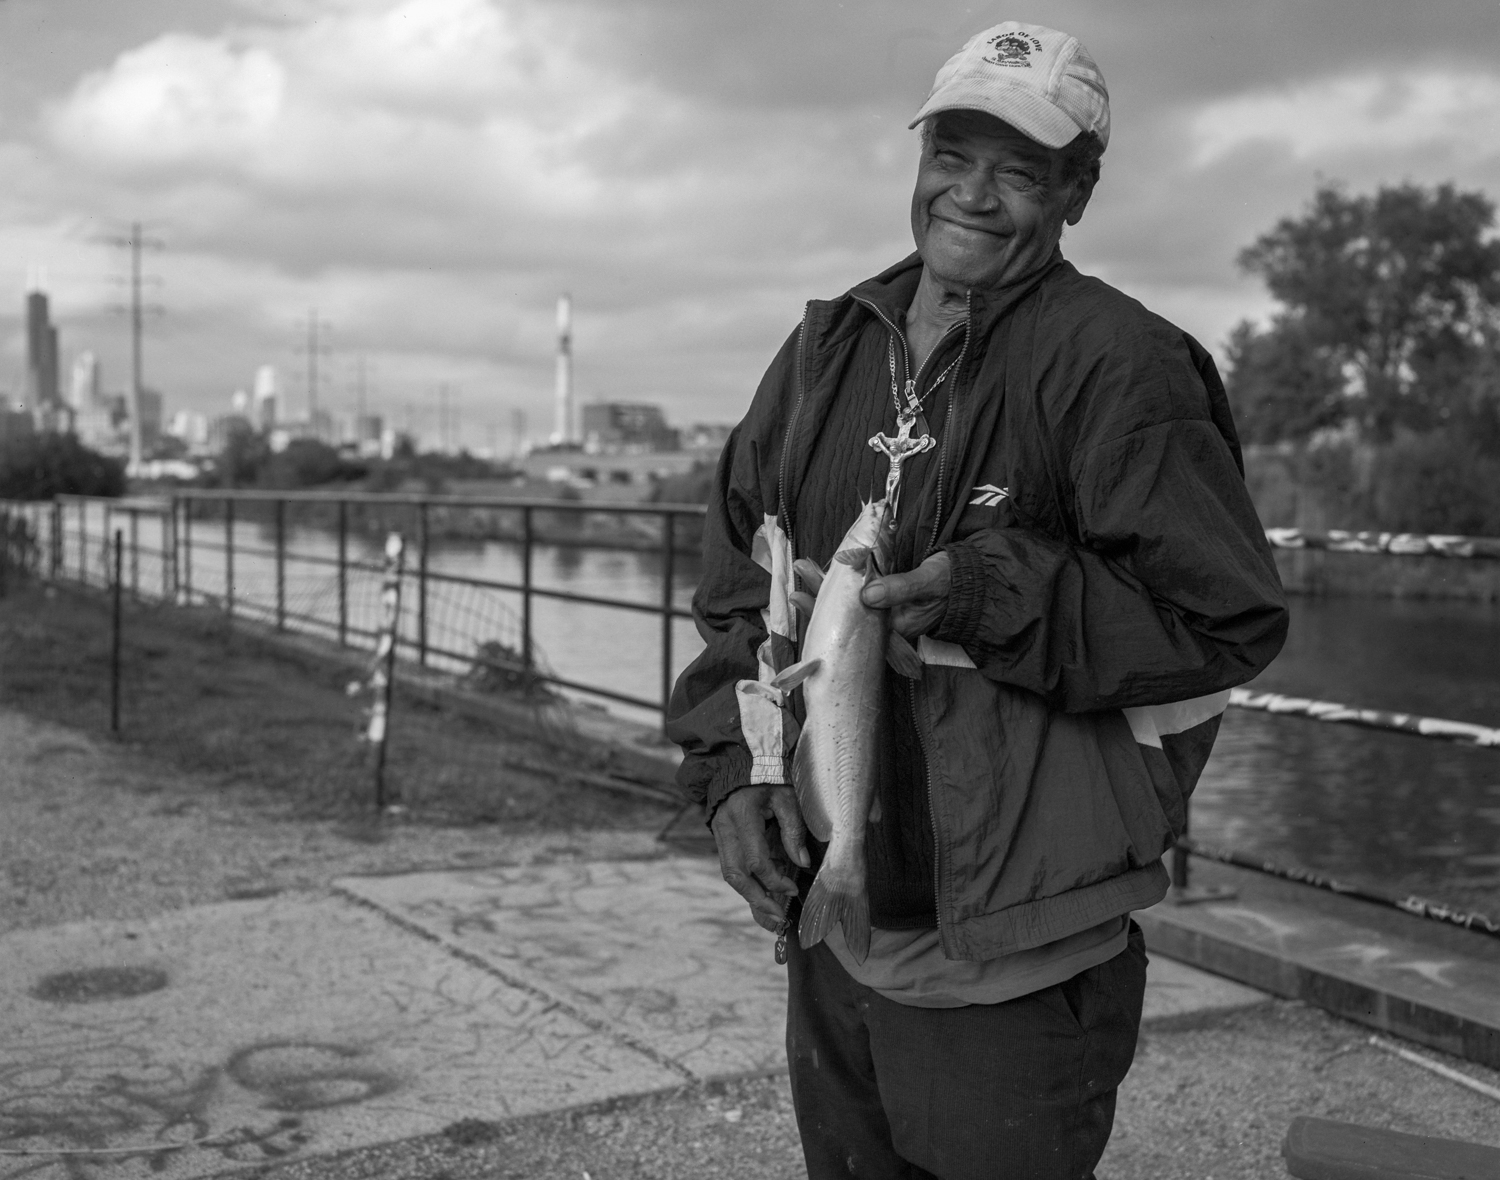 Thomas with Catfish, Chicago River ©2013